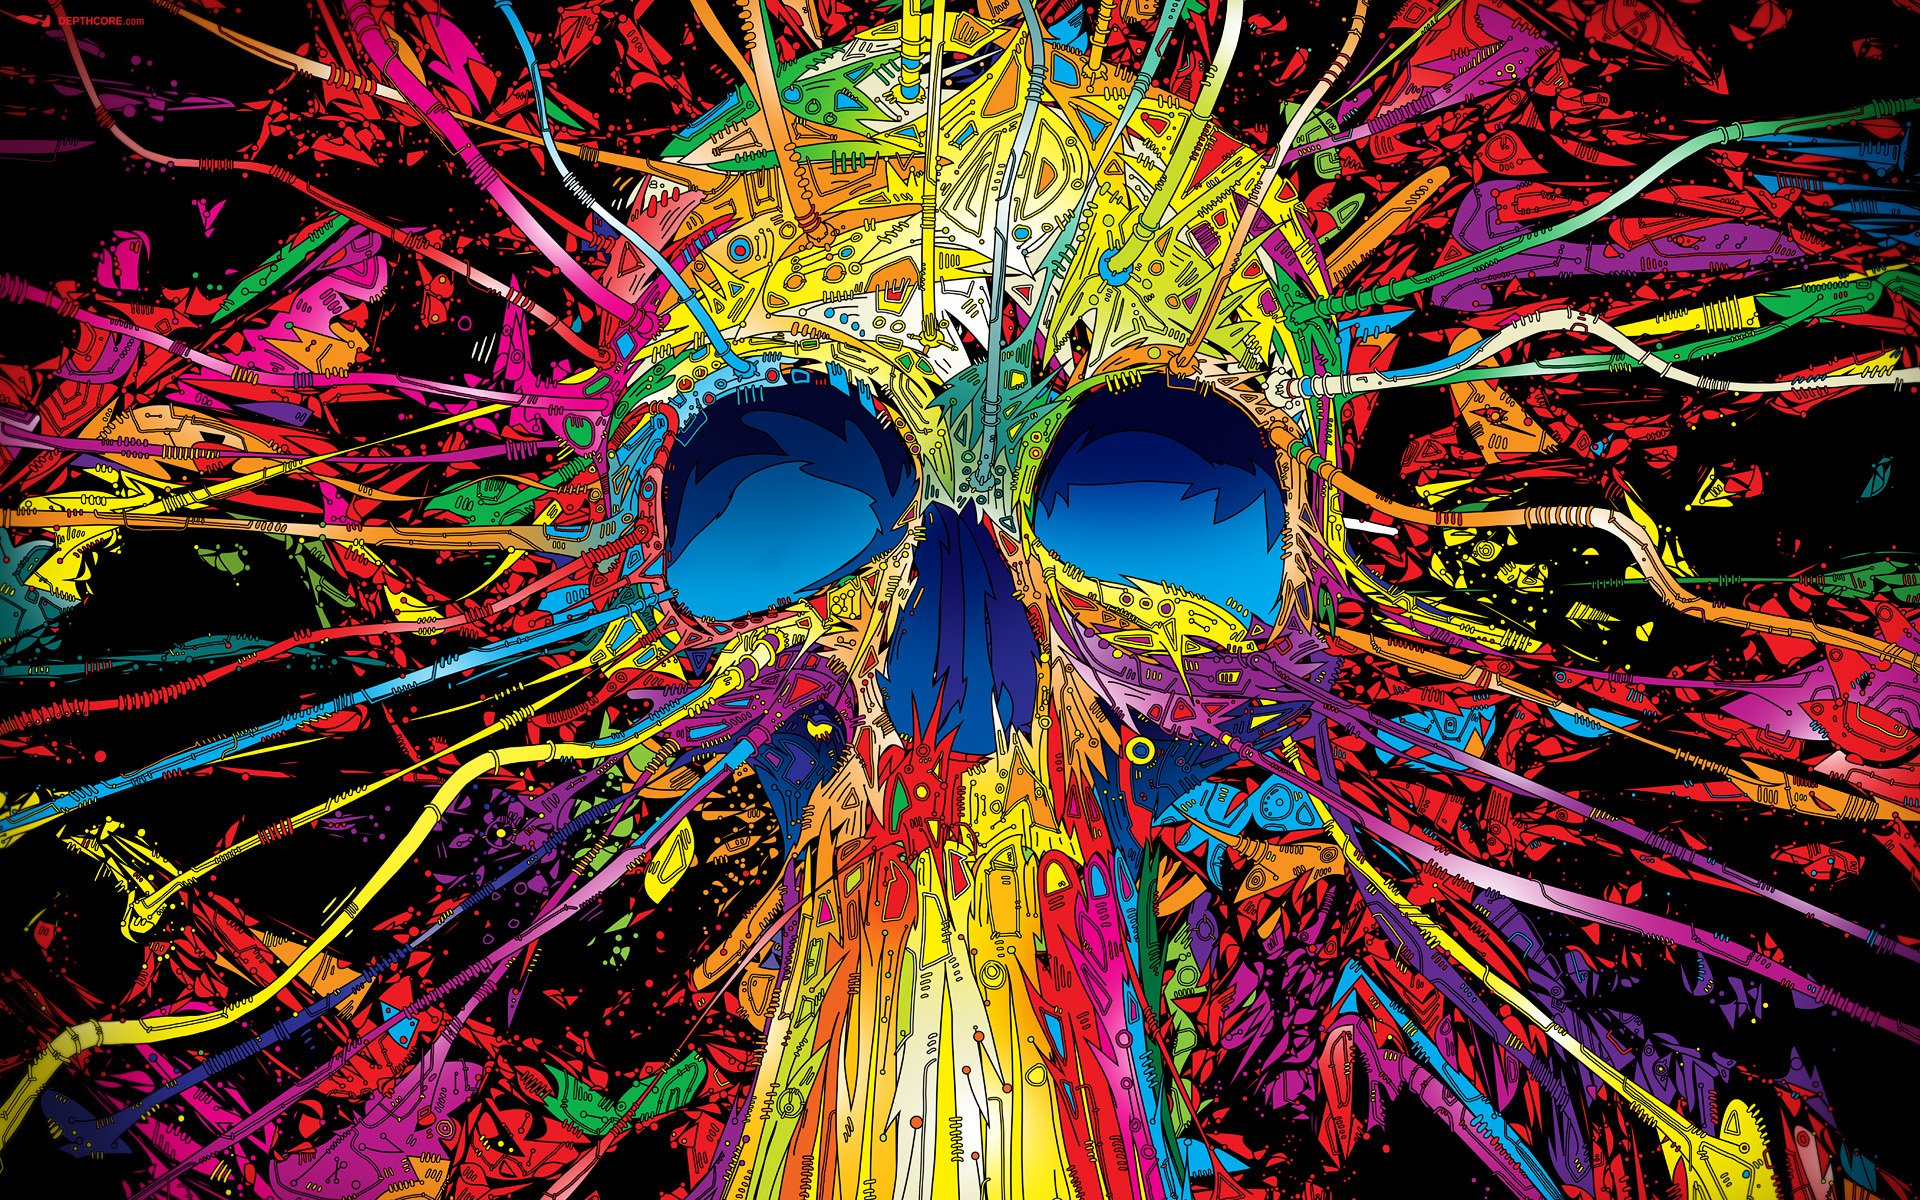 Psychedelic Space Wallpapers Psychedelic skull hd 1920x1200